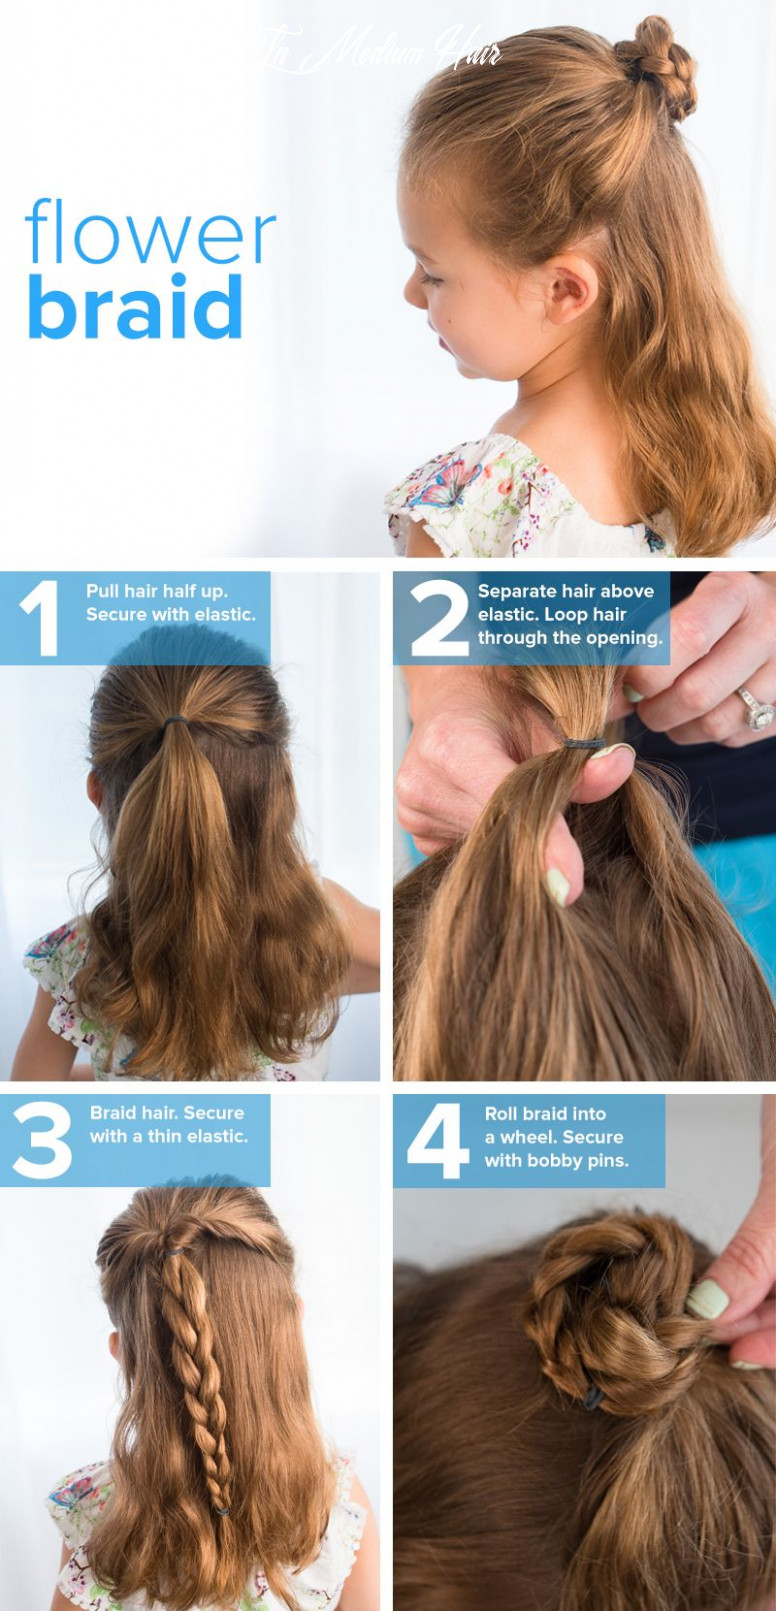 12 easy back to school hairstyles for girls | cute simple